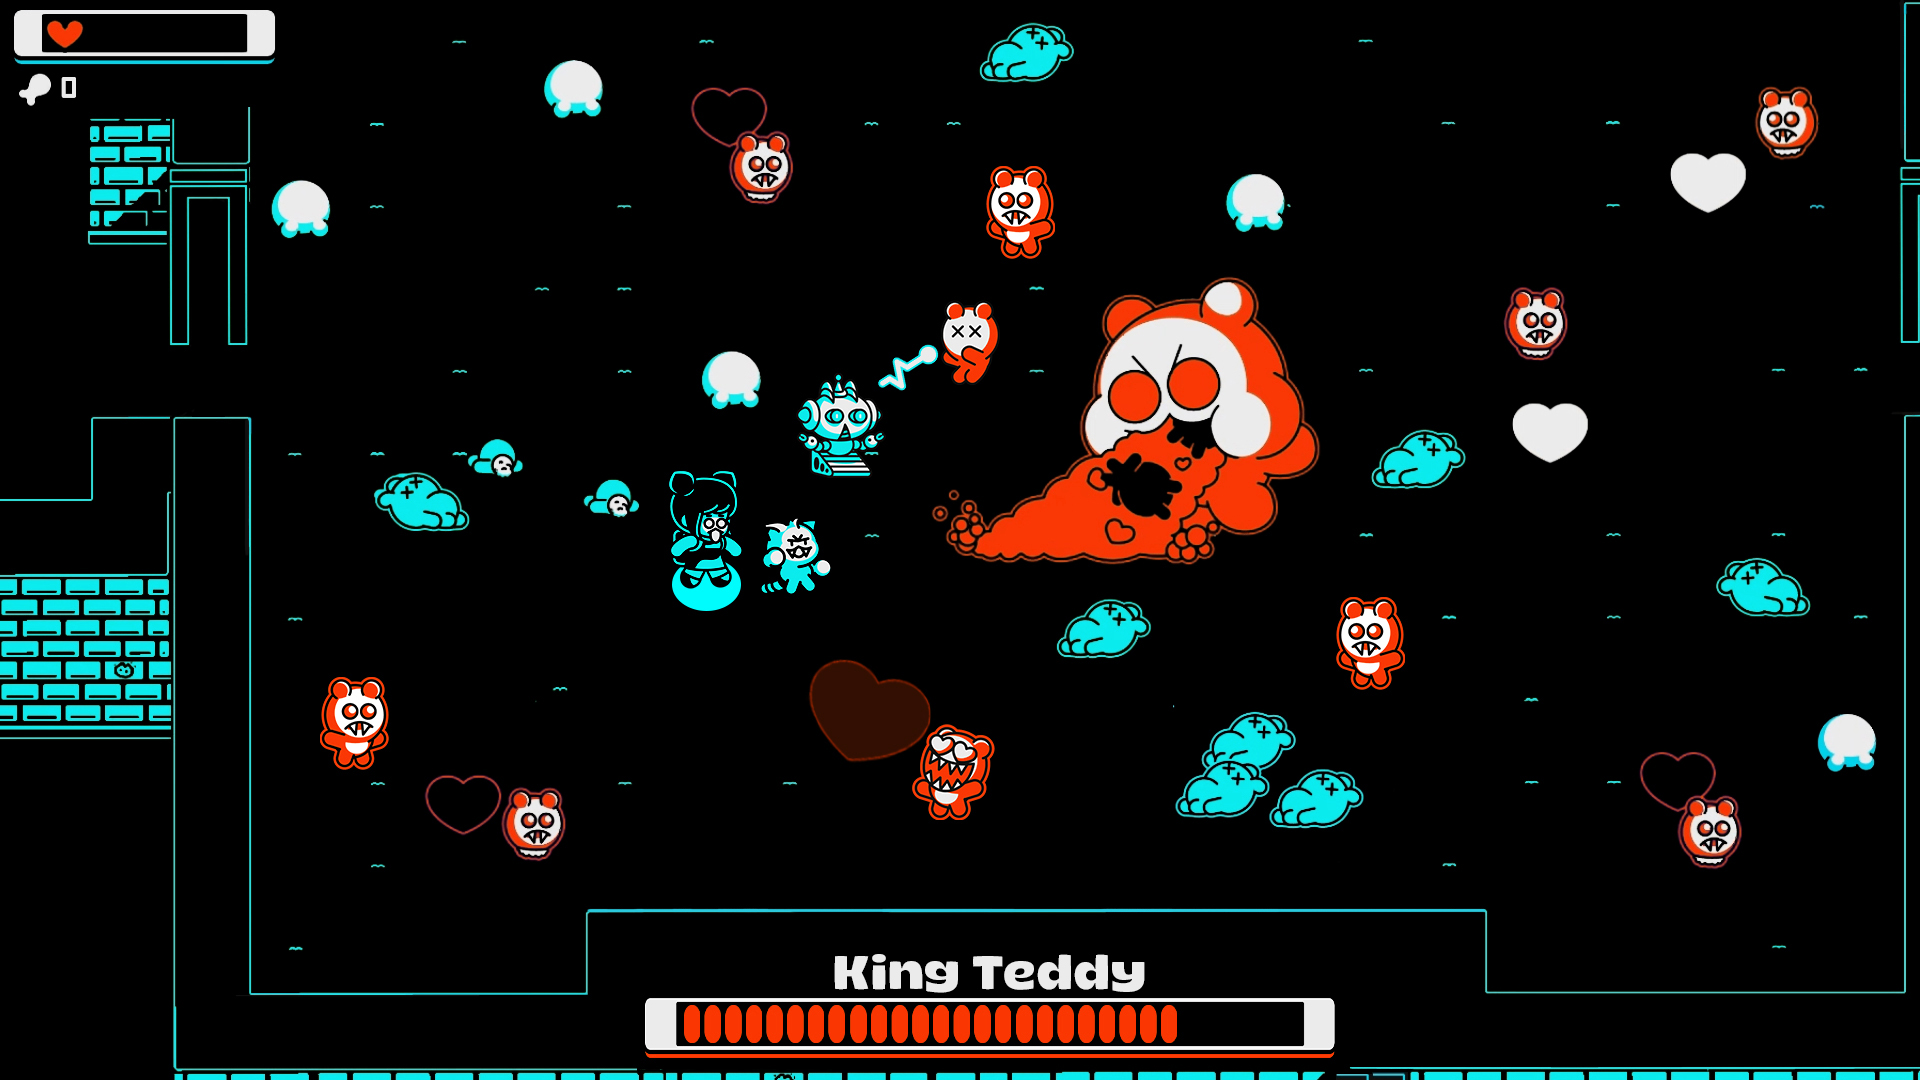 6-boss-teddy-puke.jpg